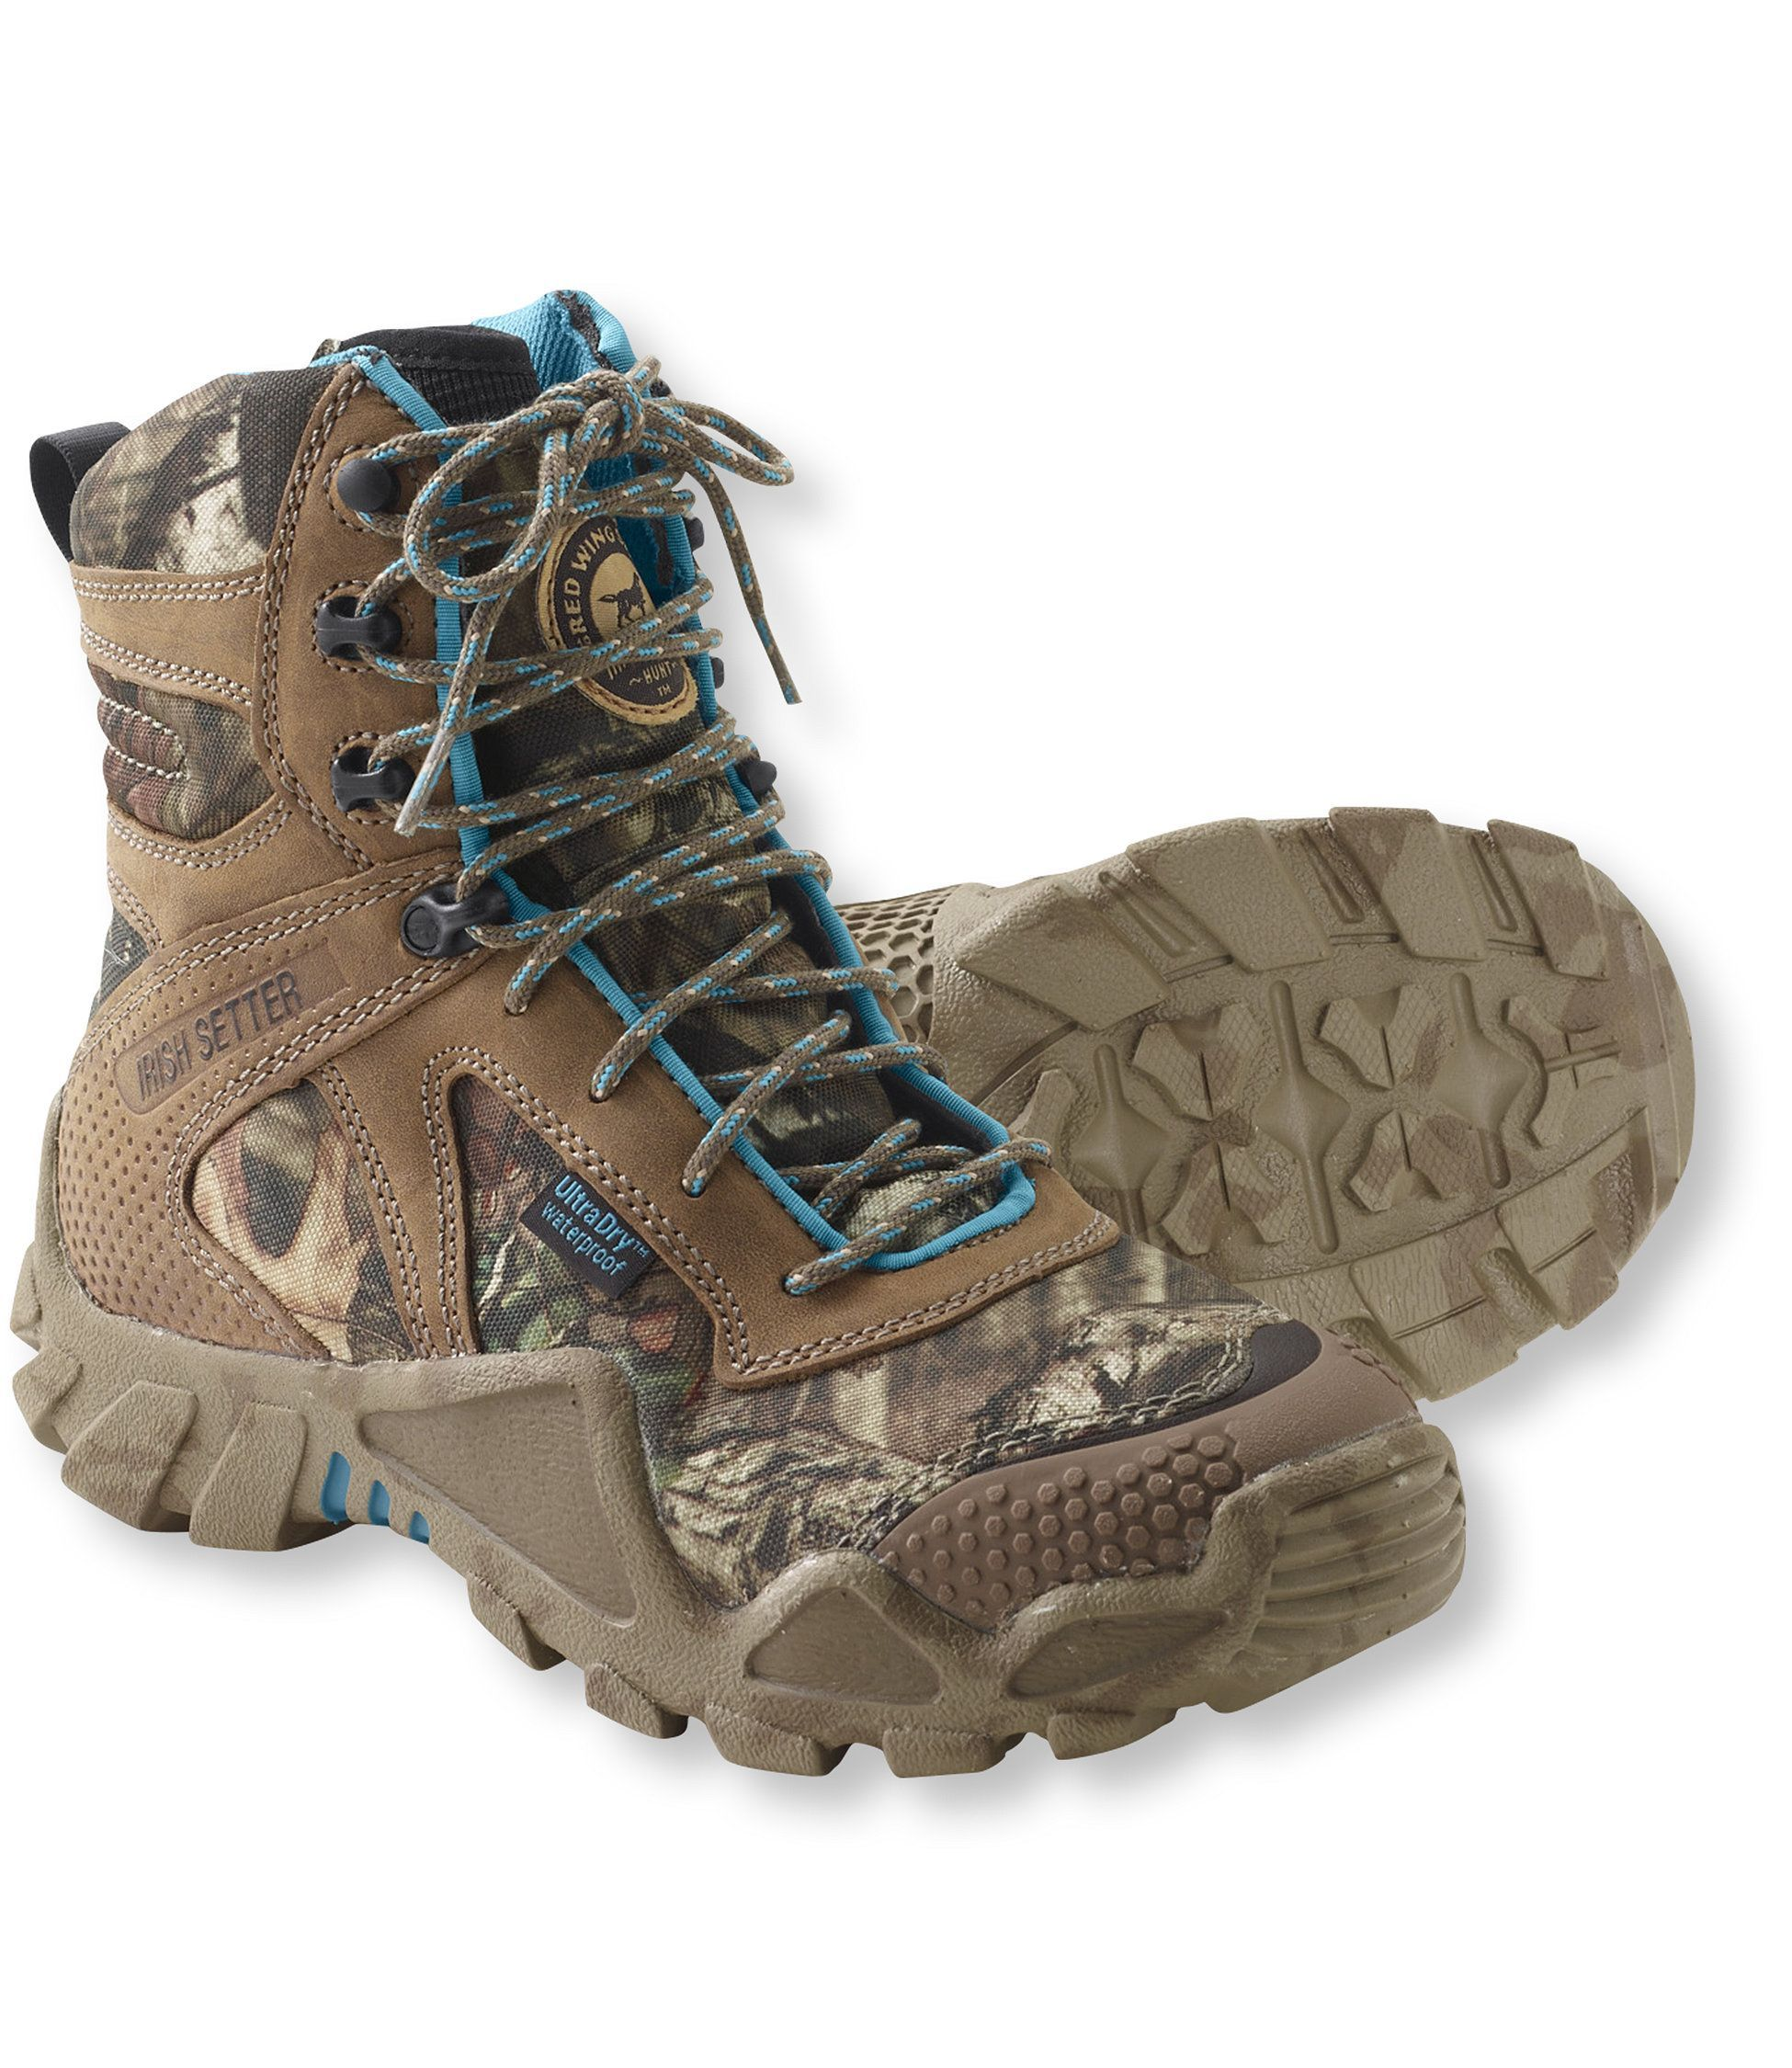 401a5746c09 Women's Irish Setter VaprTrek Hunting Boots | Products | Hunting ...